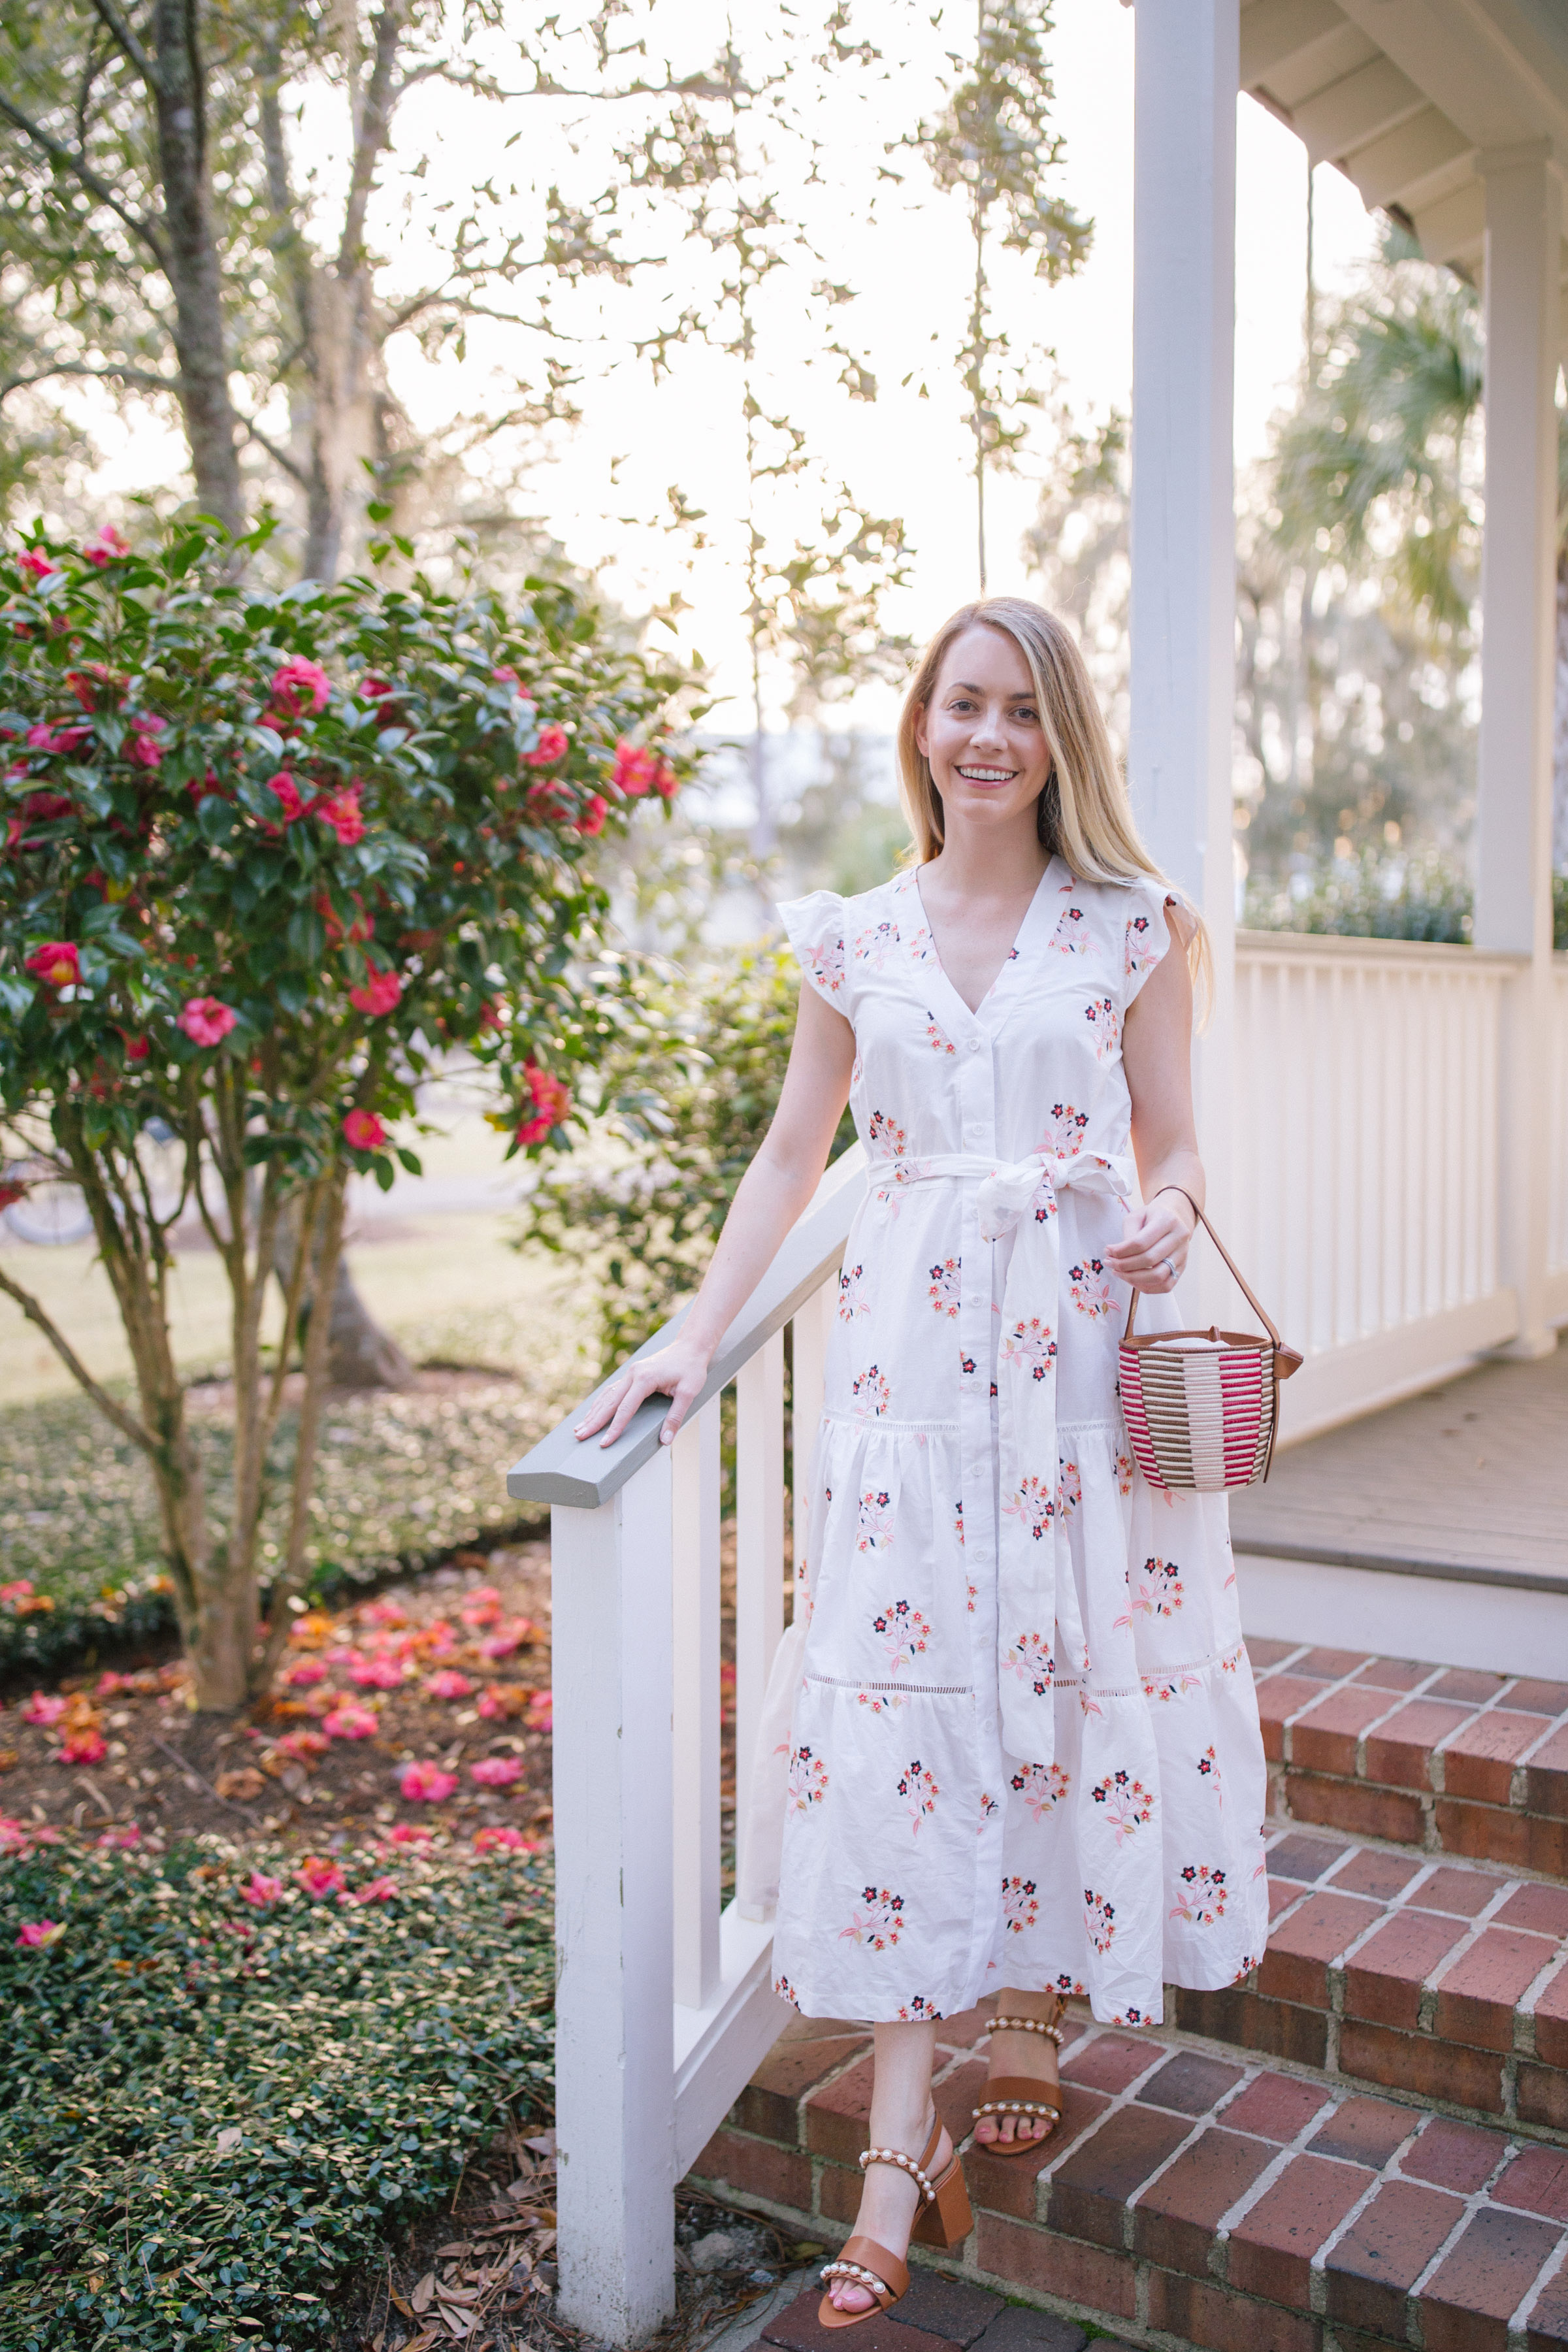 Perfect floral outfit ideas for spring and summer parties | Rhyme & Reason